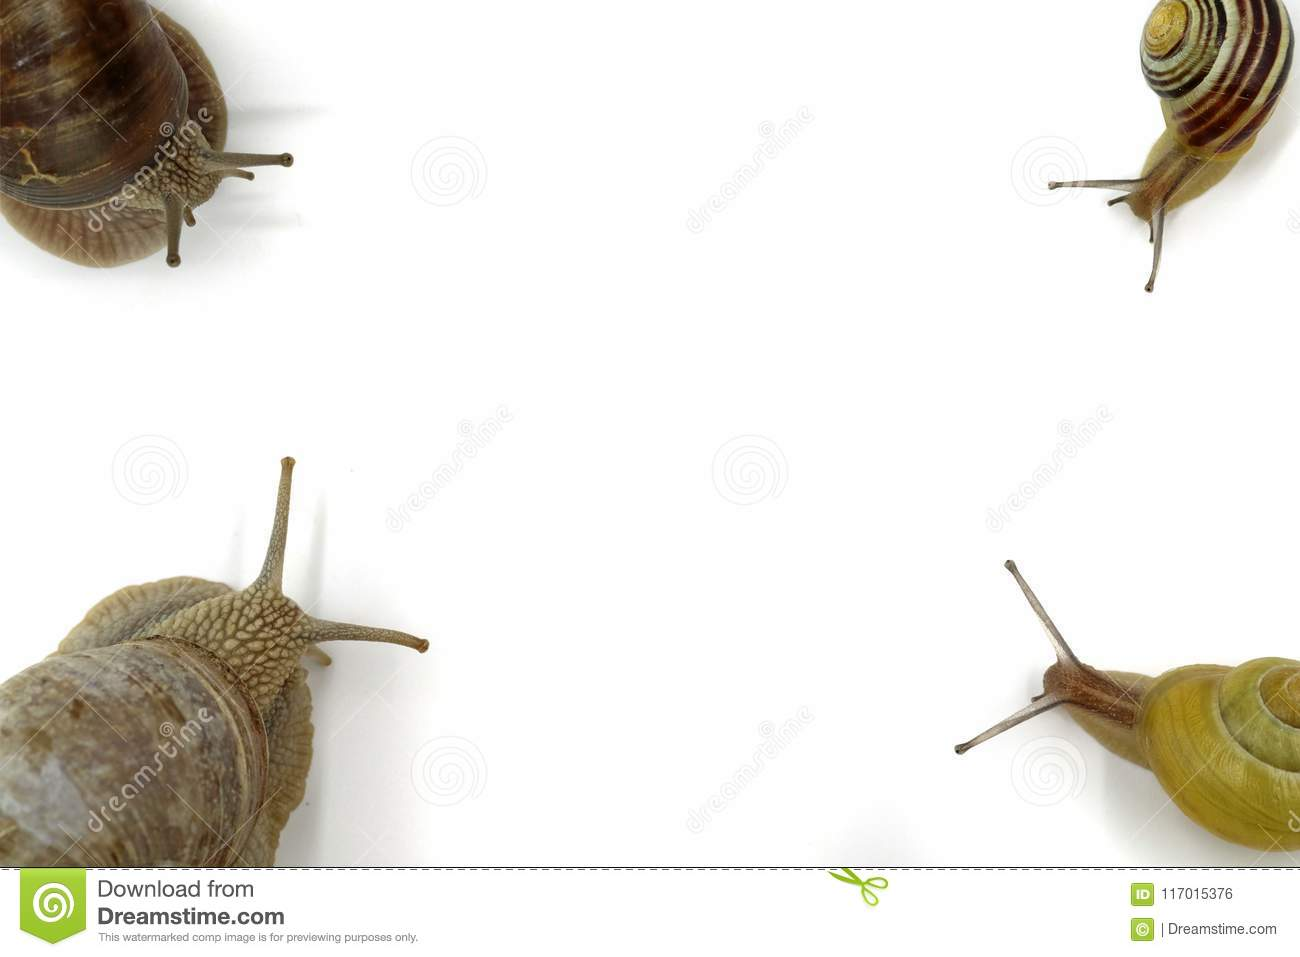 Snails in each corner top view isolated on white with copy space